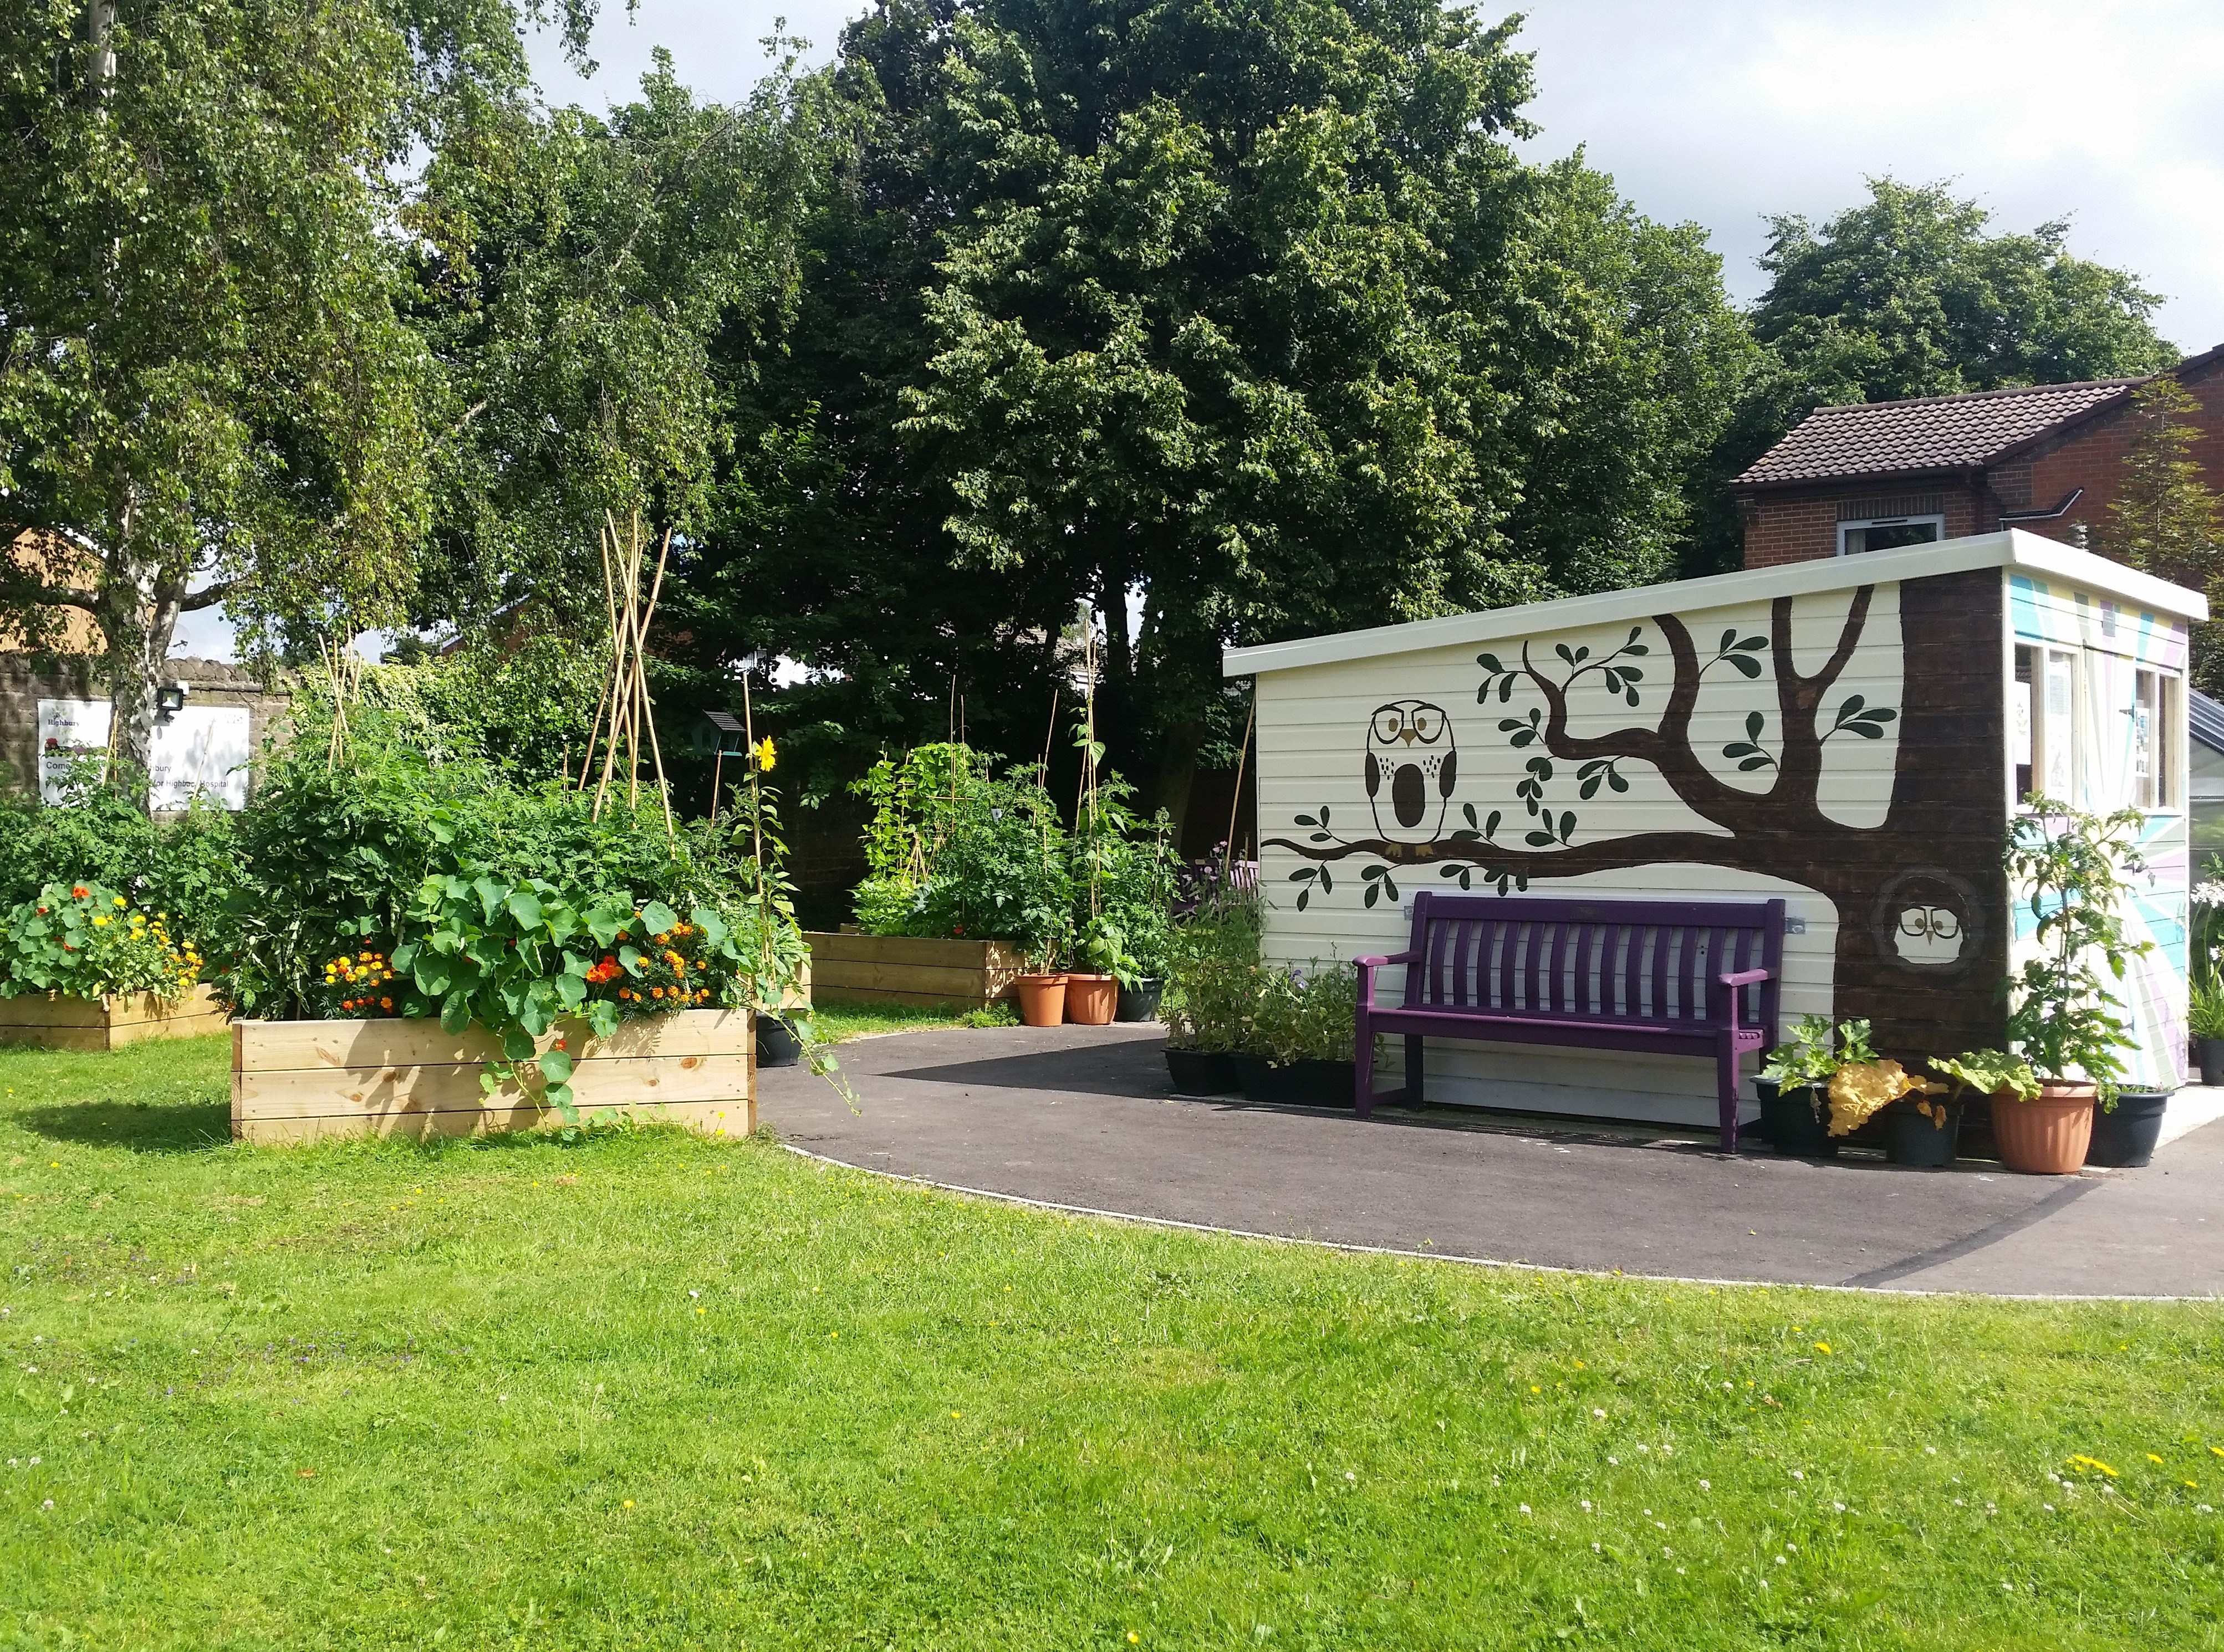 Picture of the community garden including raised beds, grass, trees, a bench and a shed